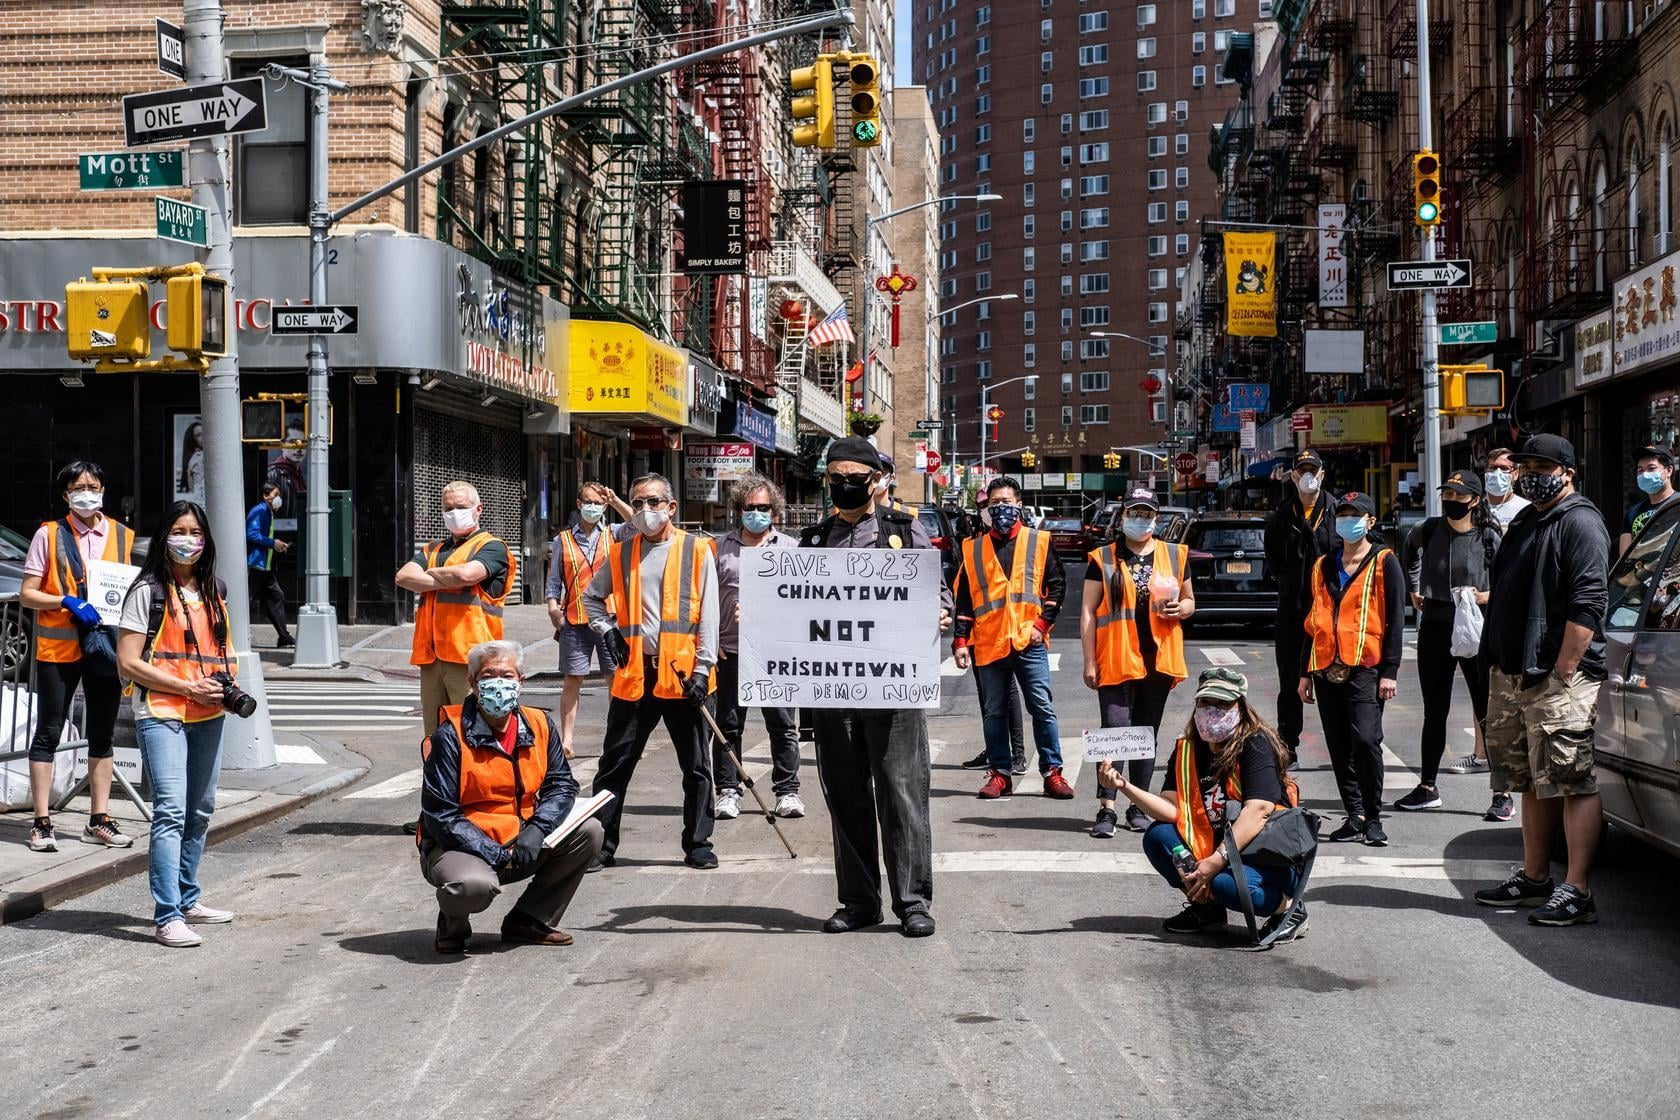 Volunteers from the Chinatown Block Watch neighbourhood patrol group pose for pictures before patrolling in Chinatown in New York City, US, May 17. — Reuters